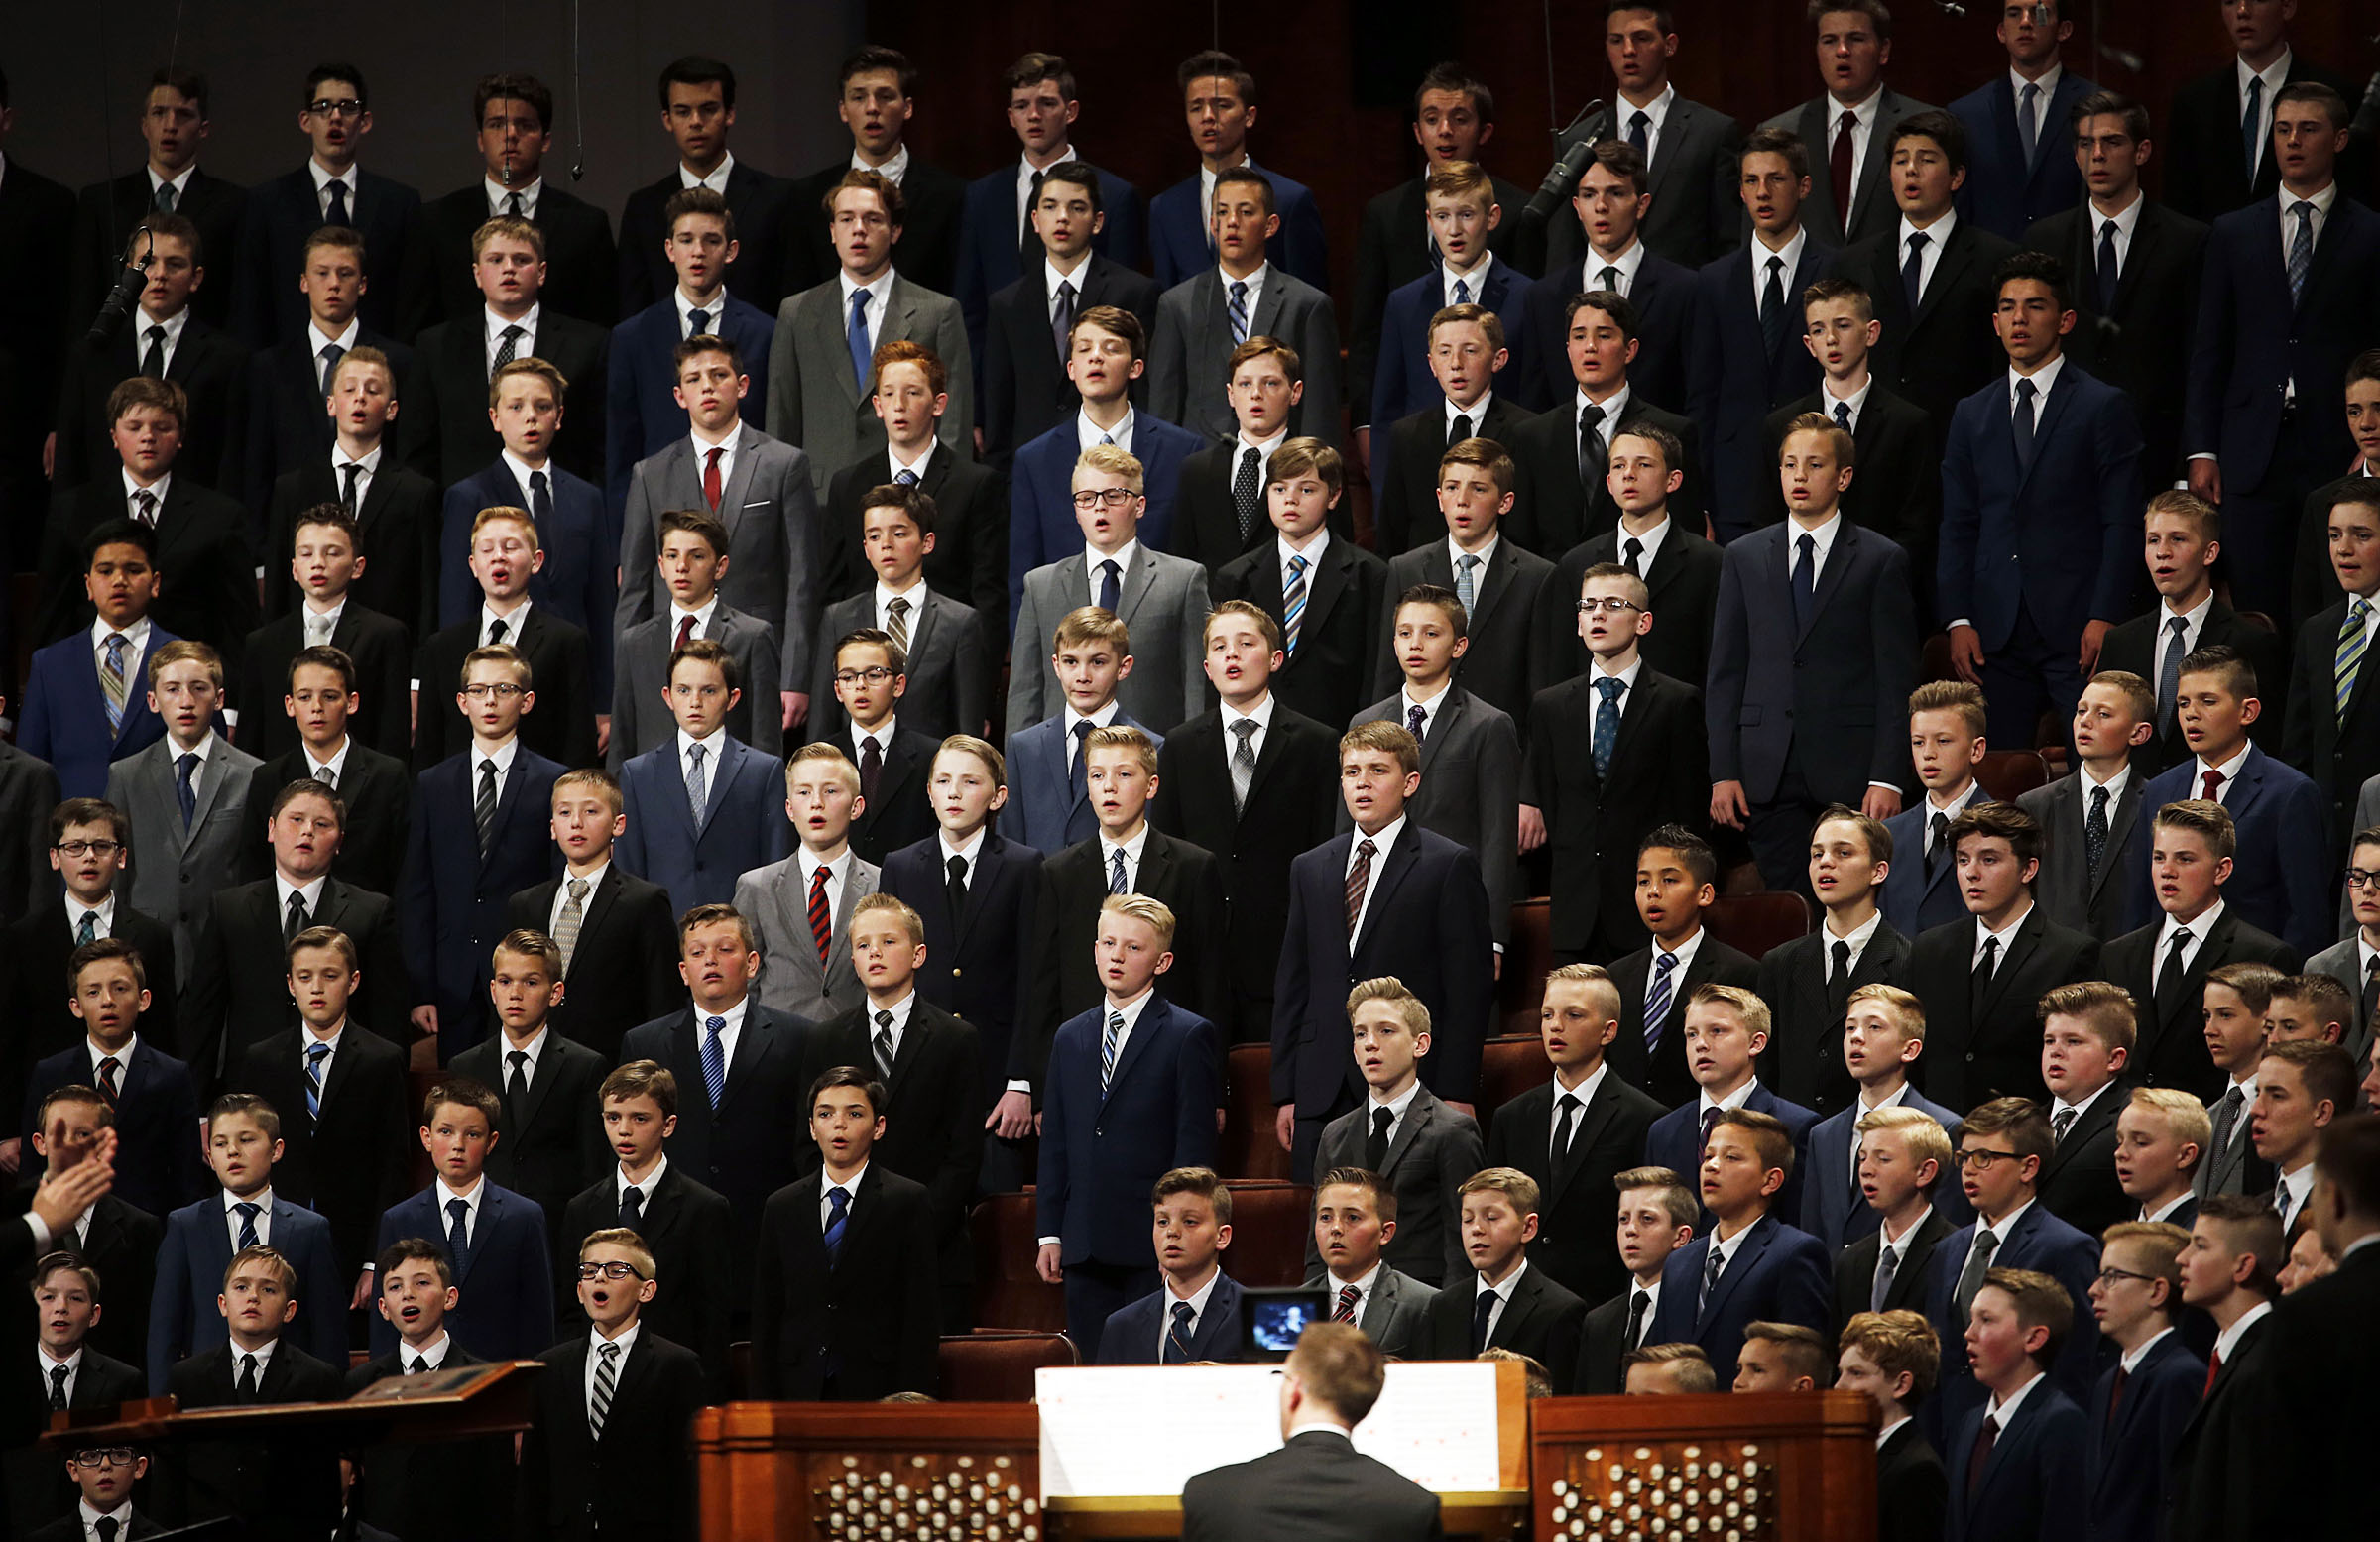 An Aaronic Priesthood choir from stakes in Layton, Utah, sings during the 189th Annual General Conference of The Church of Jesus Christ of Latter-day Saints in the Conference Center in Salt Lake City on Saturday, April 6, 2019.